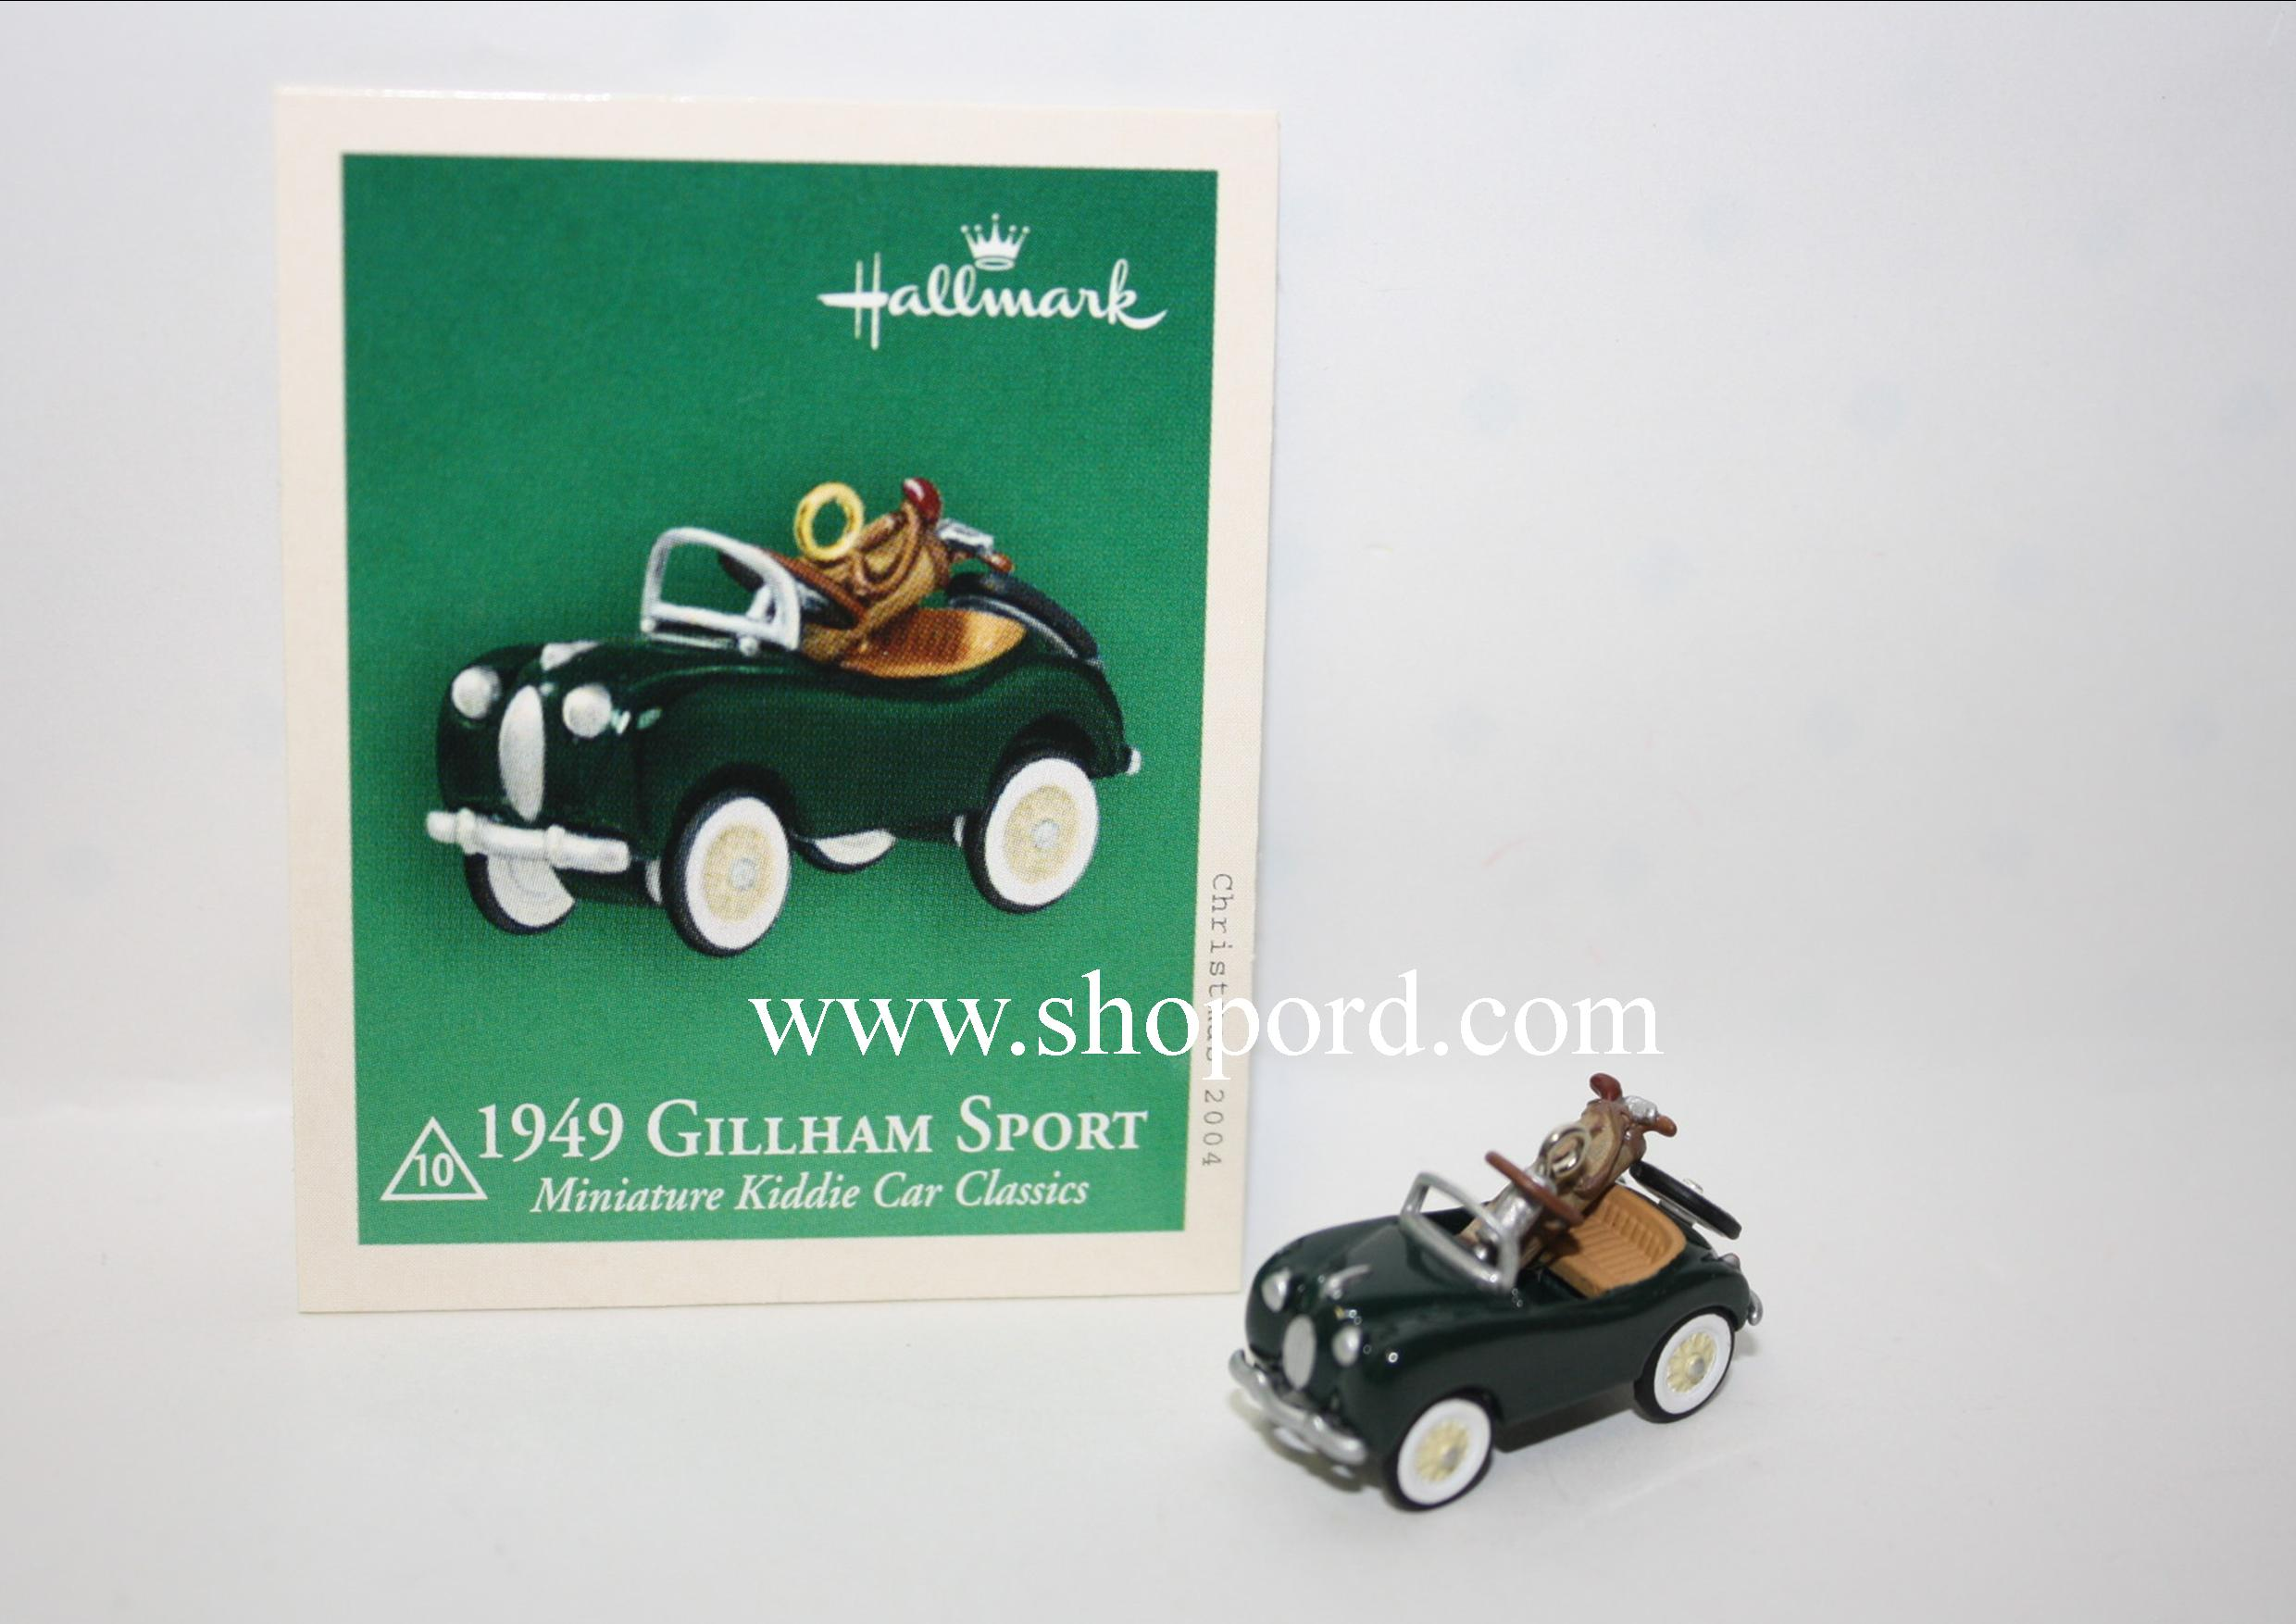 Hallmark 1949 Gillham Sport Kiddie Car Classic 2004 Miniature Ornament 10th in the series QXM5161